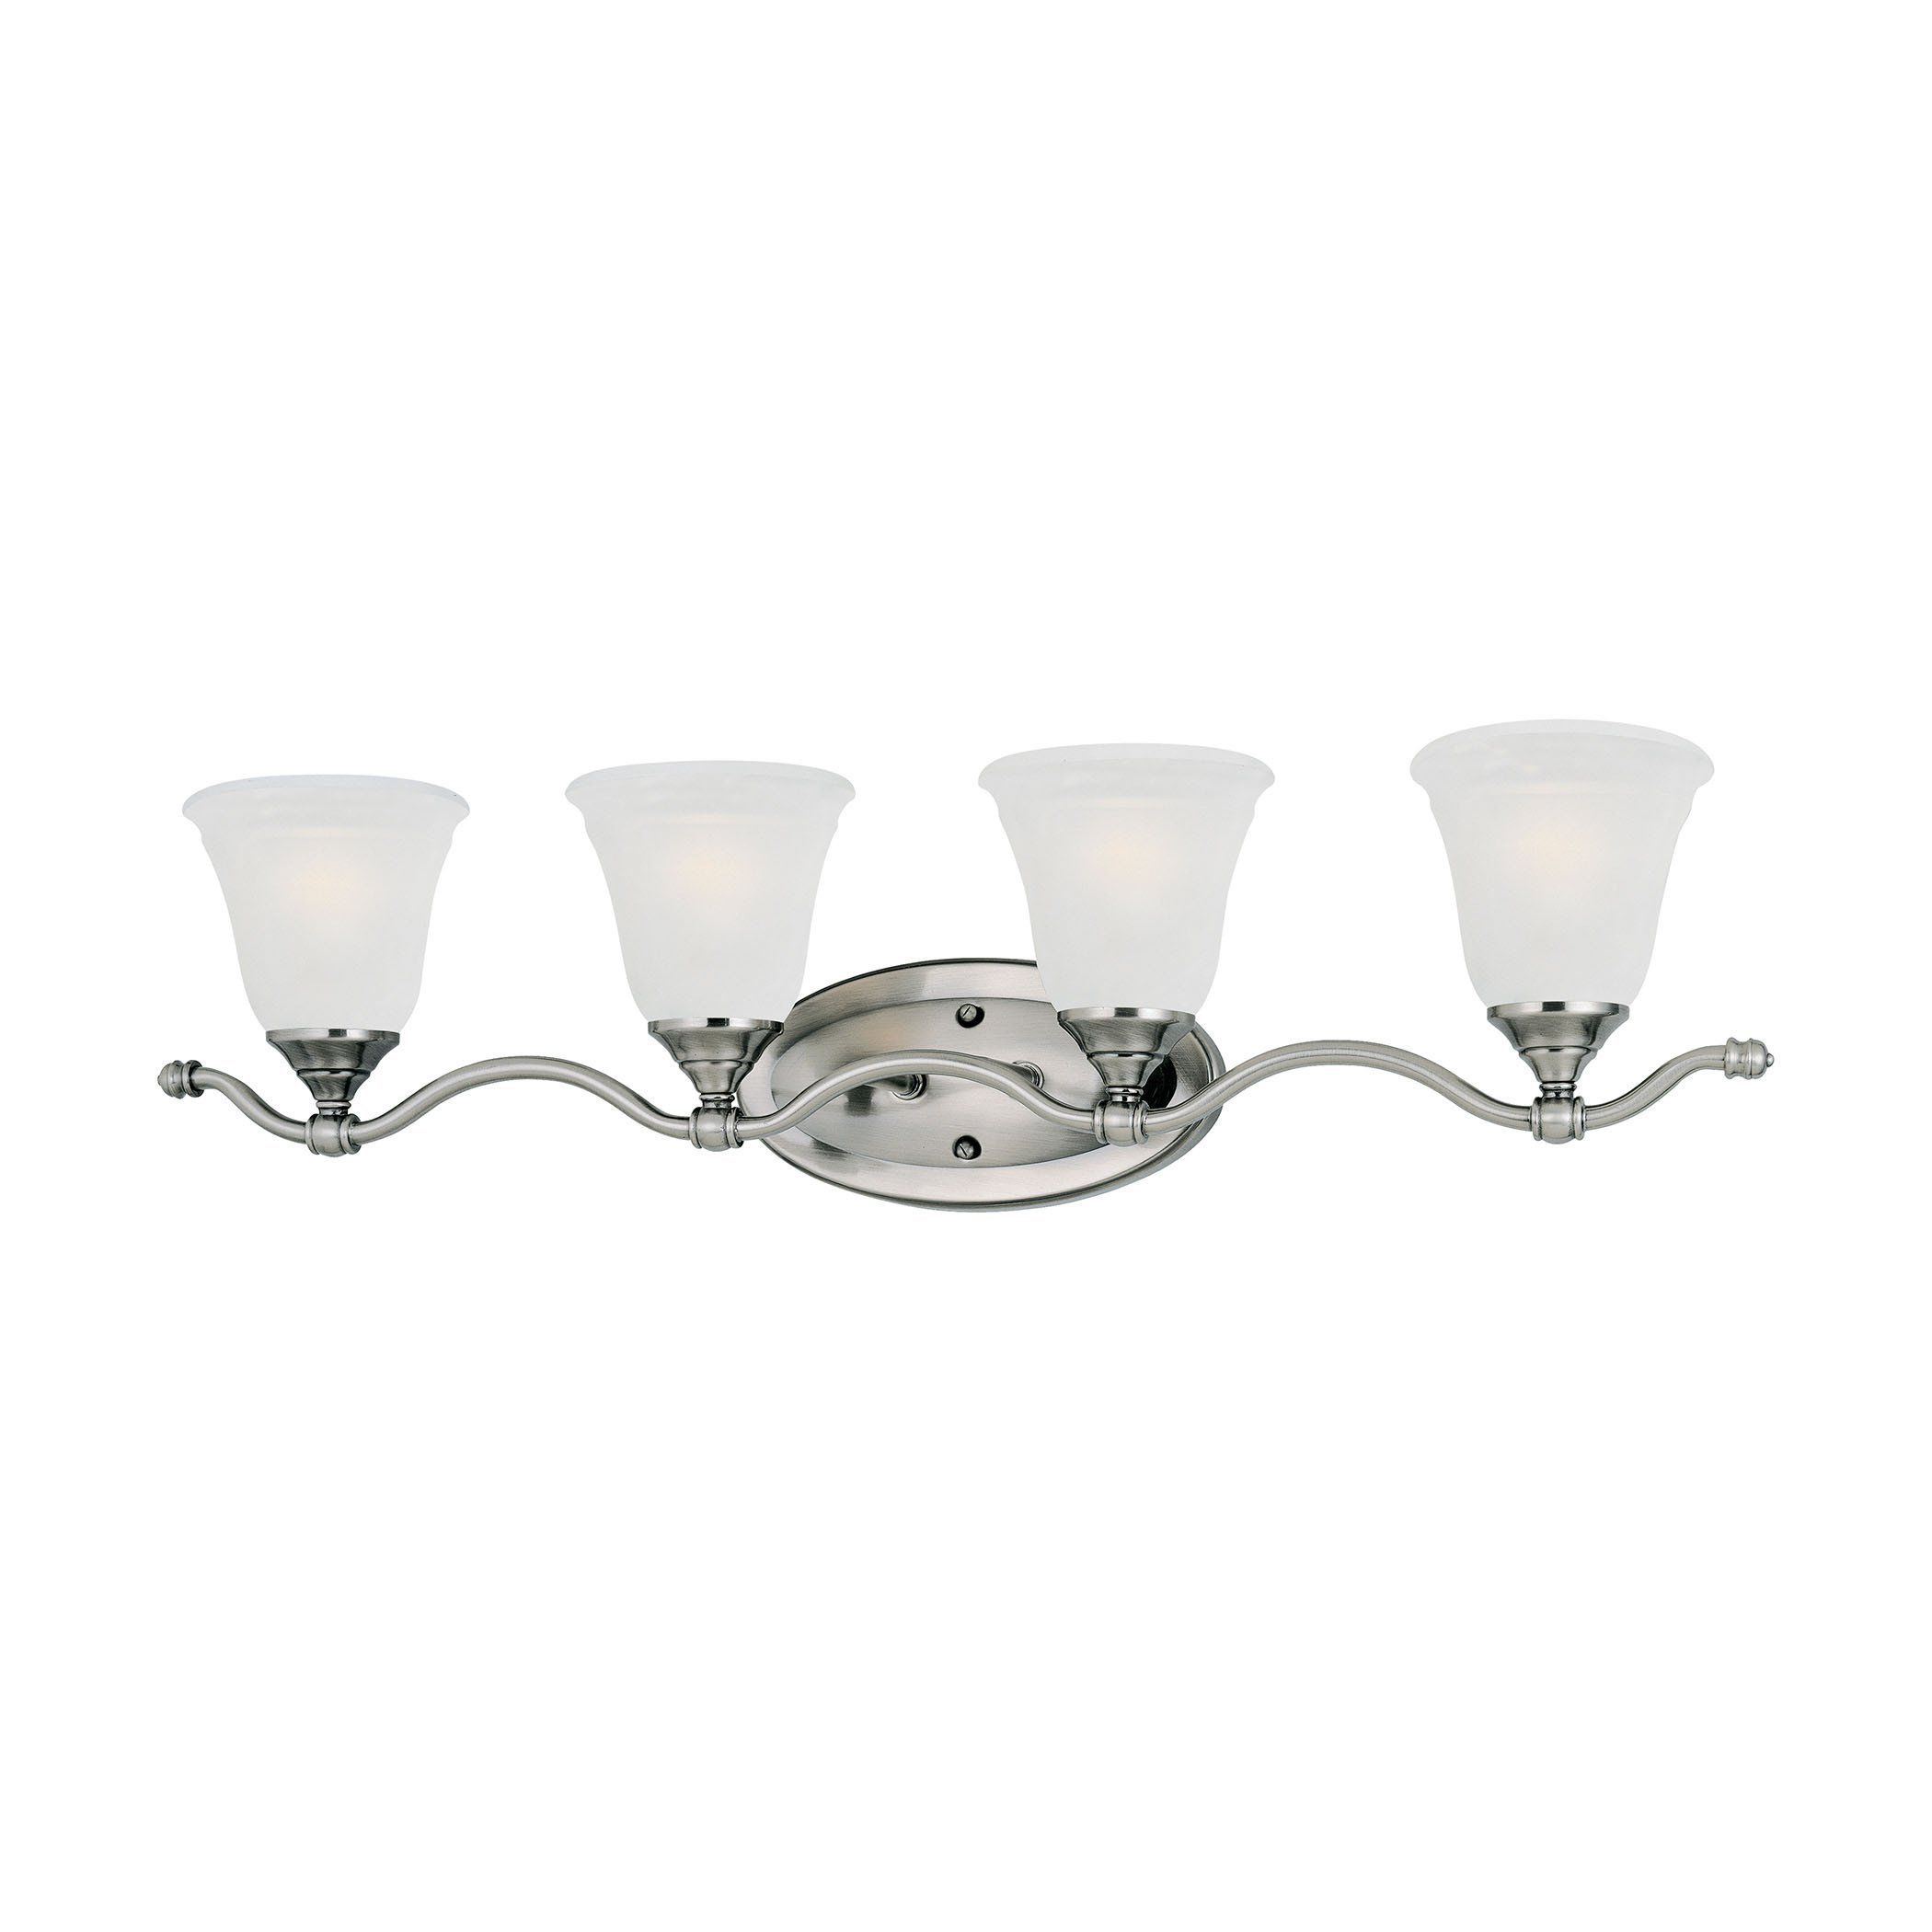 Thomas Lighting SL760441 Harmony Collection Satin Pewter Finish Traditional Wall Sconce